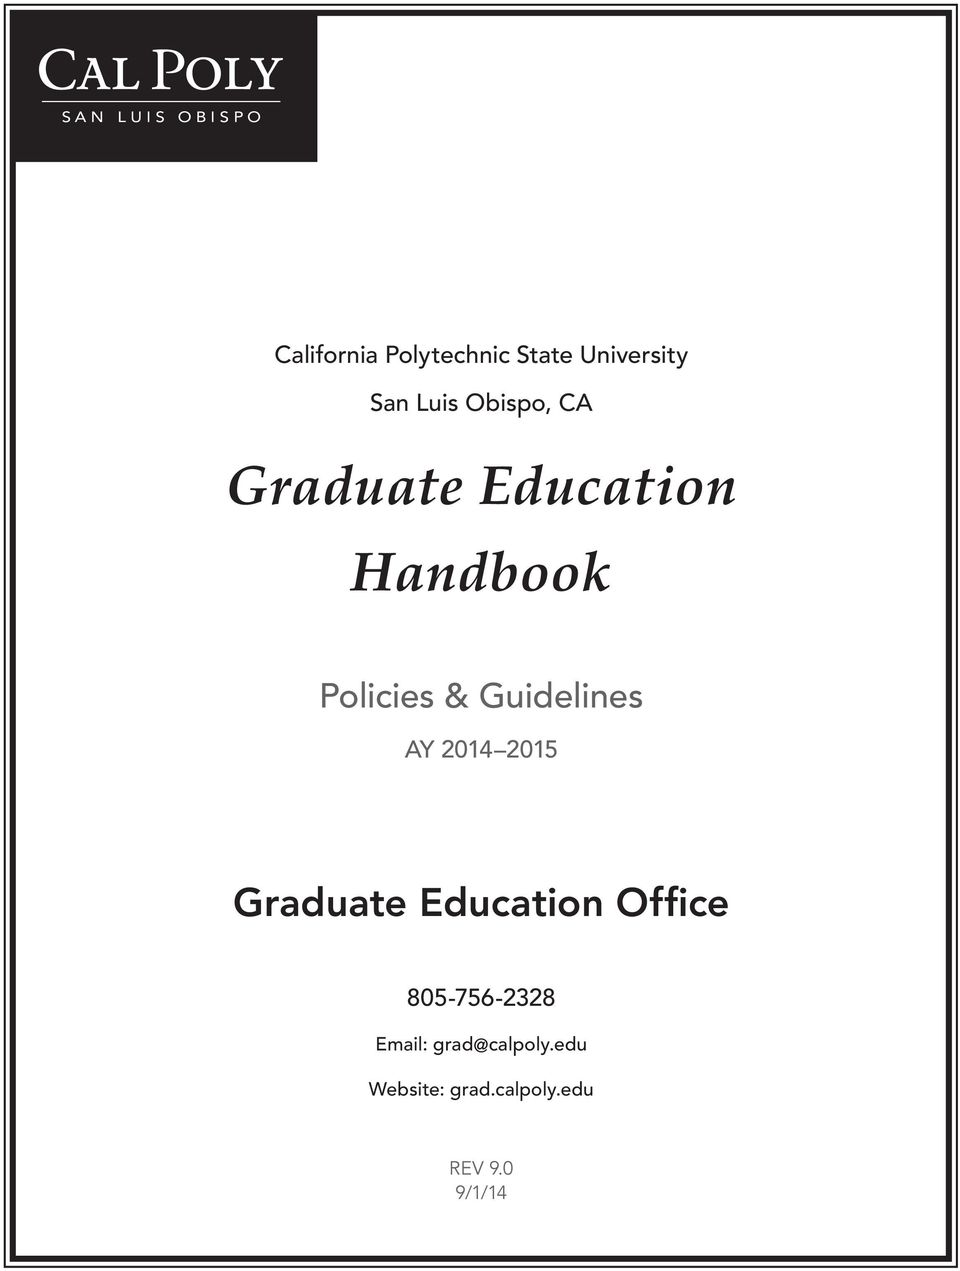 2014 2015 Graduate Education Office 805-756-2328 Email: